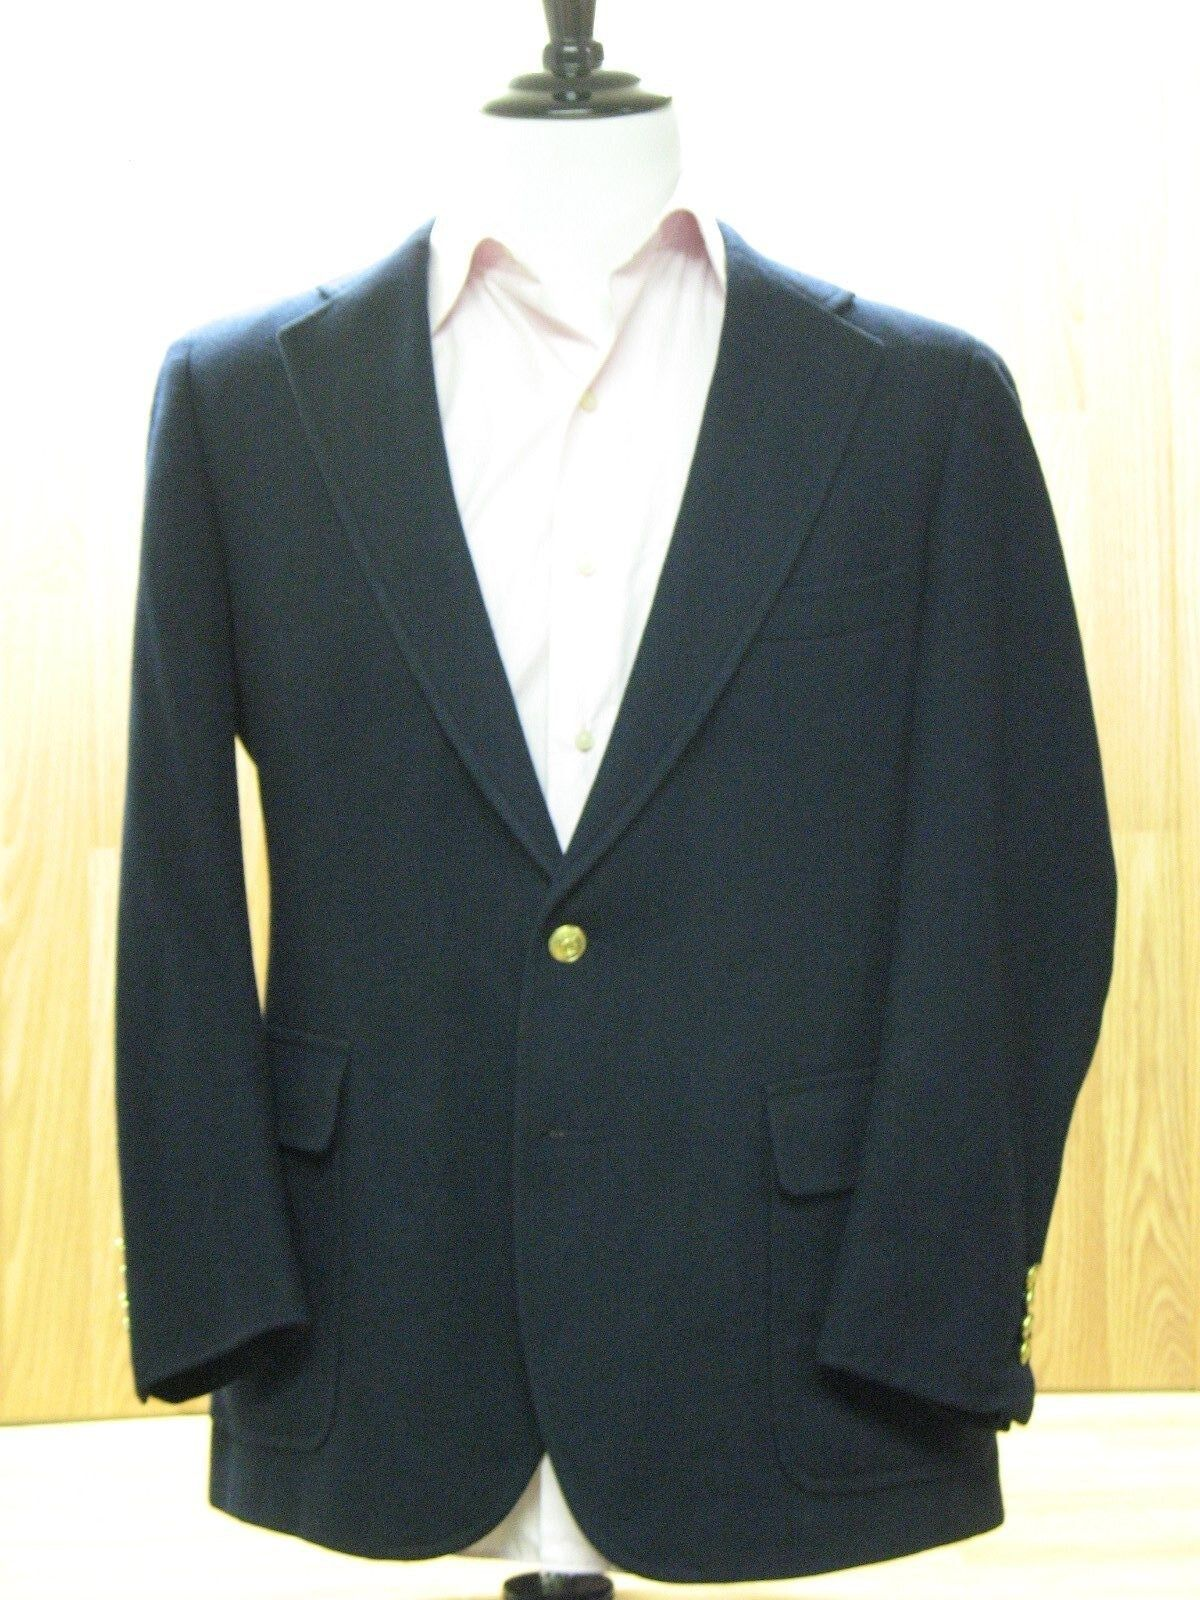 Nordstrom, Chaps by Ralph Lauren, Blau Virgin Wool Blazer with Gold Buttons